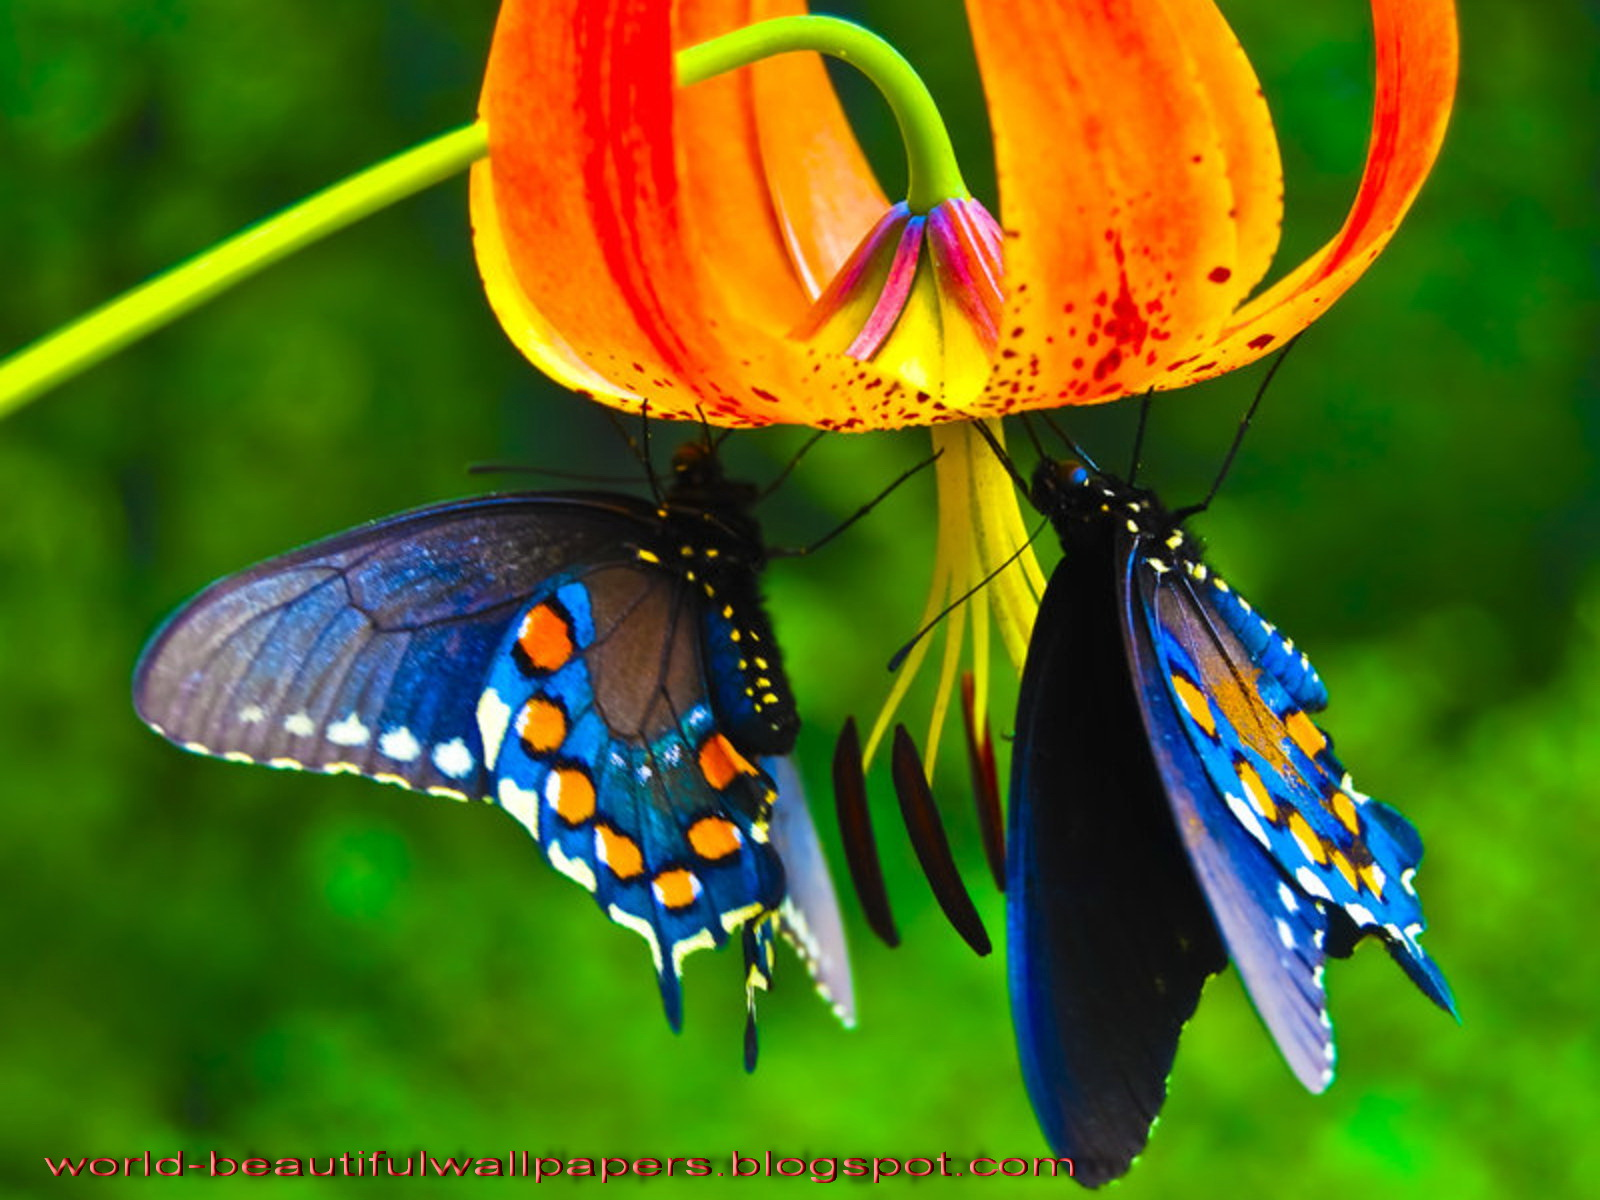 Beautiful Wallpapers: Beautiful Butterflies Wallpaper